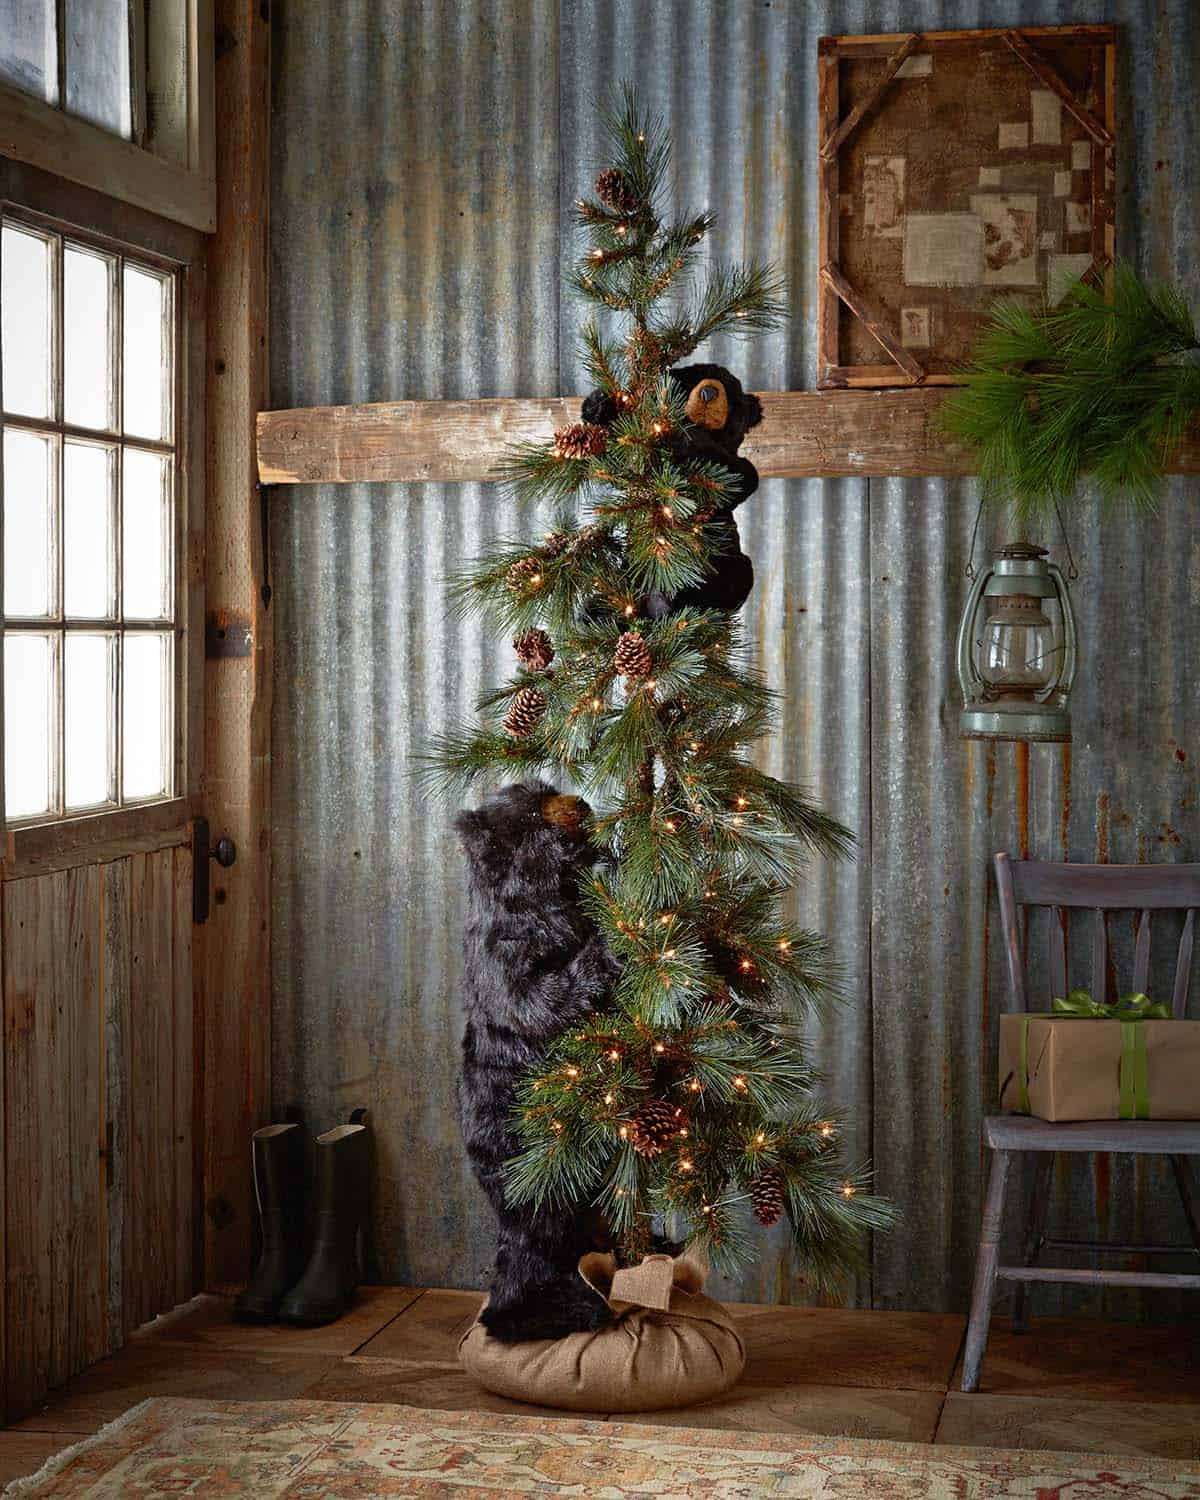 Country Rustic Home Decor: 40+ Fabulous Rustic-Country Christmas Decorating Ideas